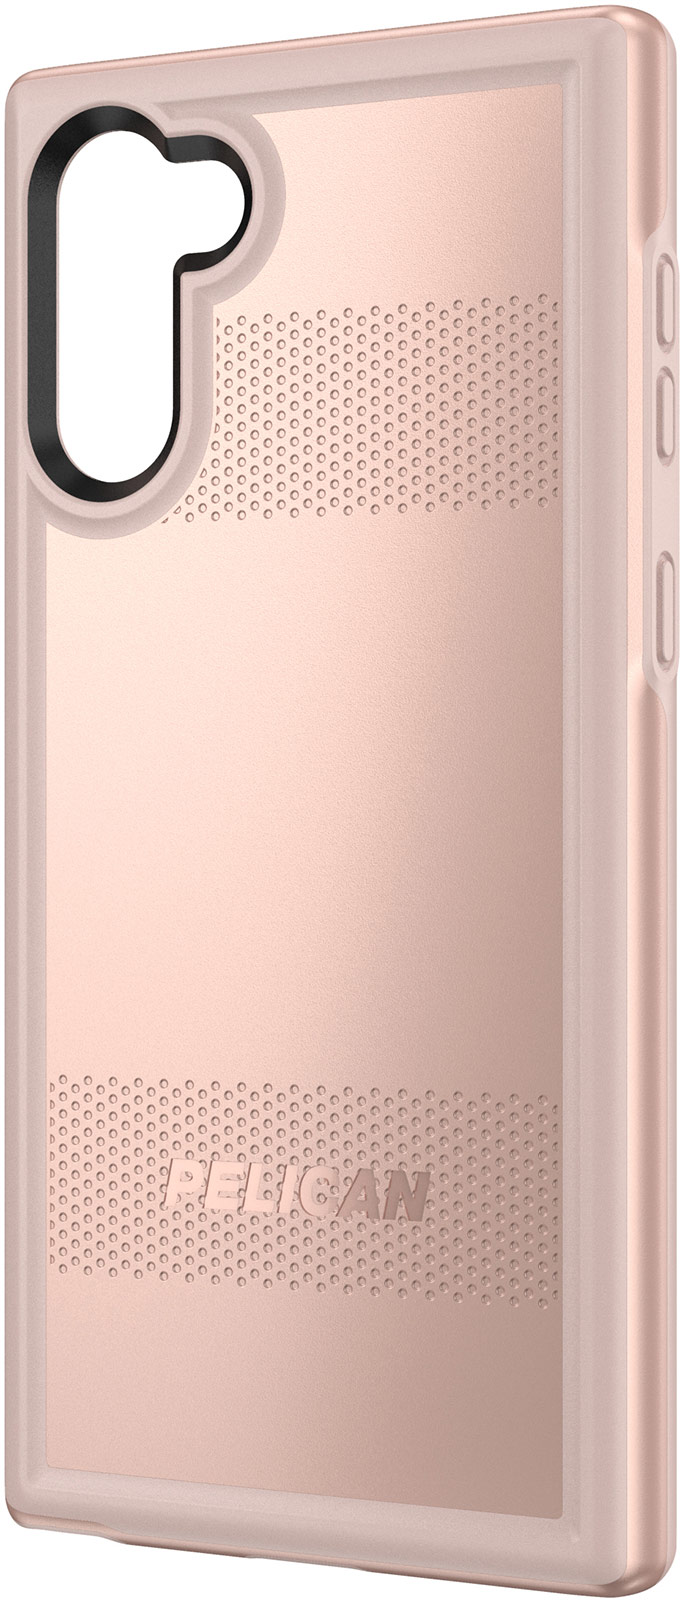 pelican galaxy note 10 protector phone case rose gold